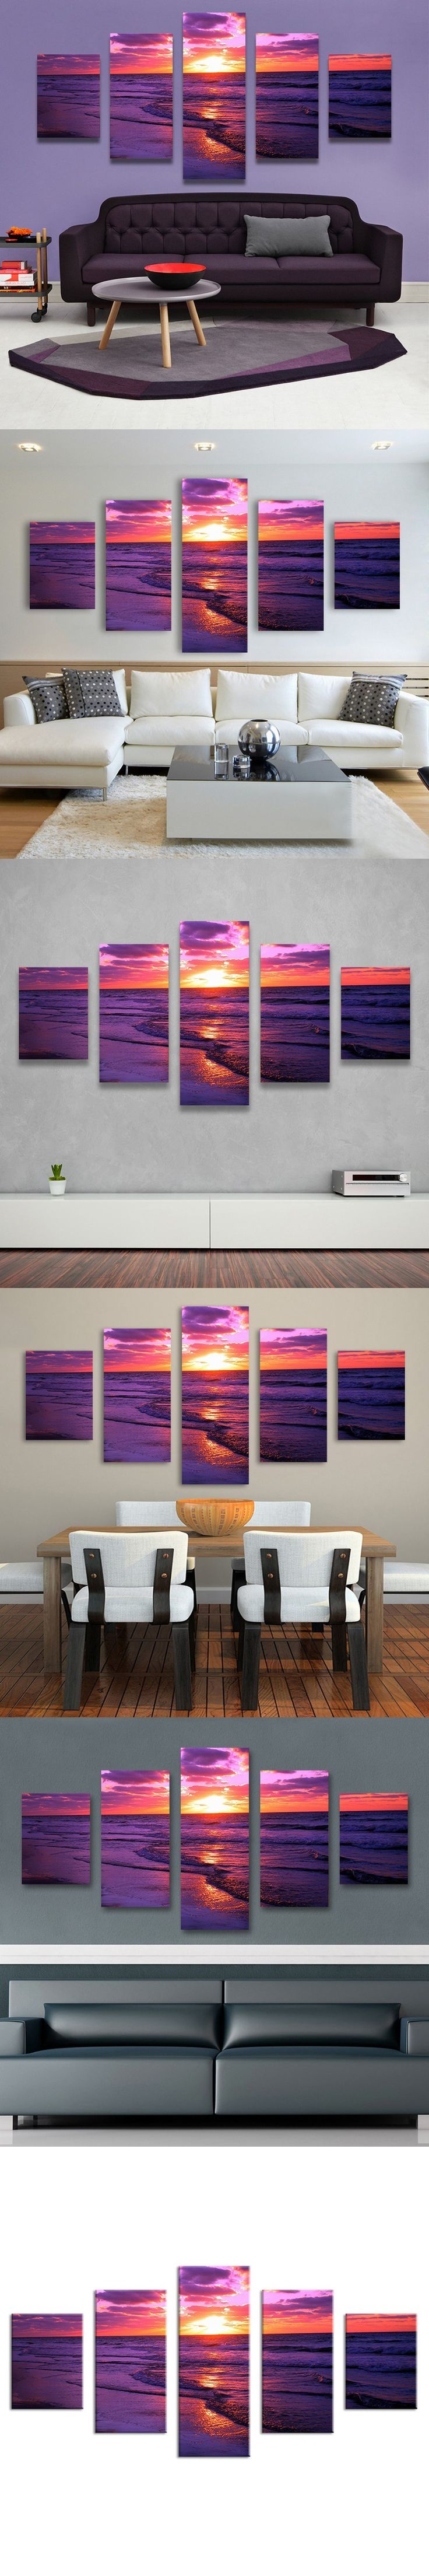 5 Panel red sunset canvas beach painting The Family Decorates Sea wave Print Oil Painting On Canvas,Wall Art Picture home decor $46.99